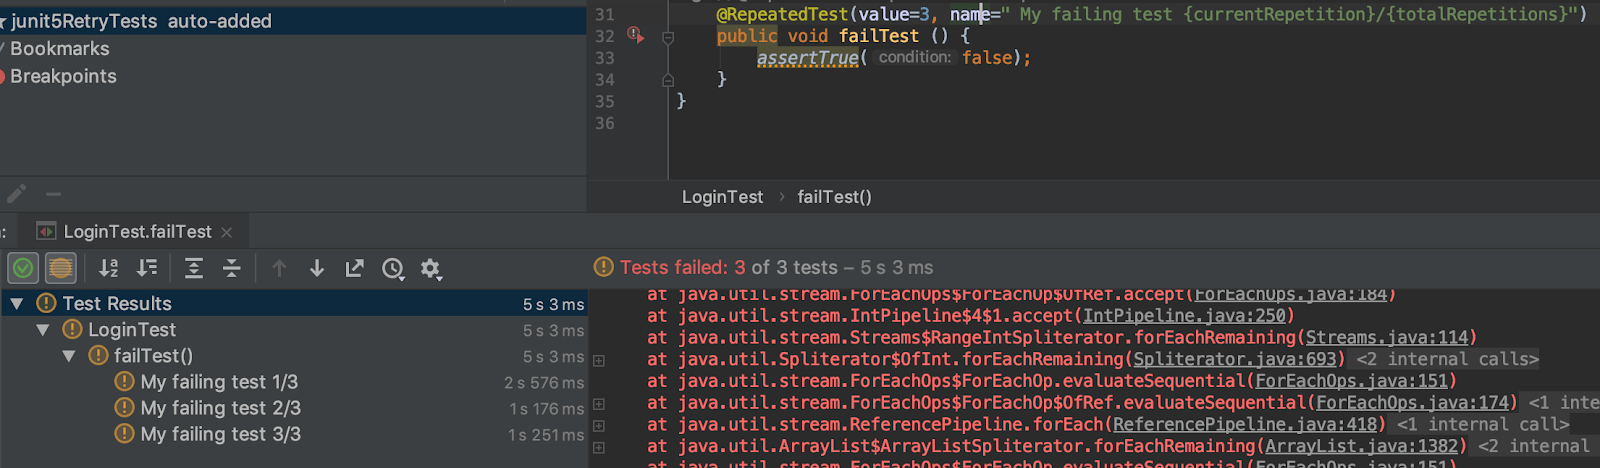 JUnit 5 How to Repeat Failed Test